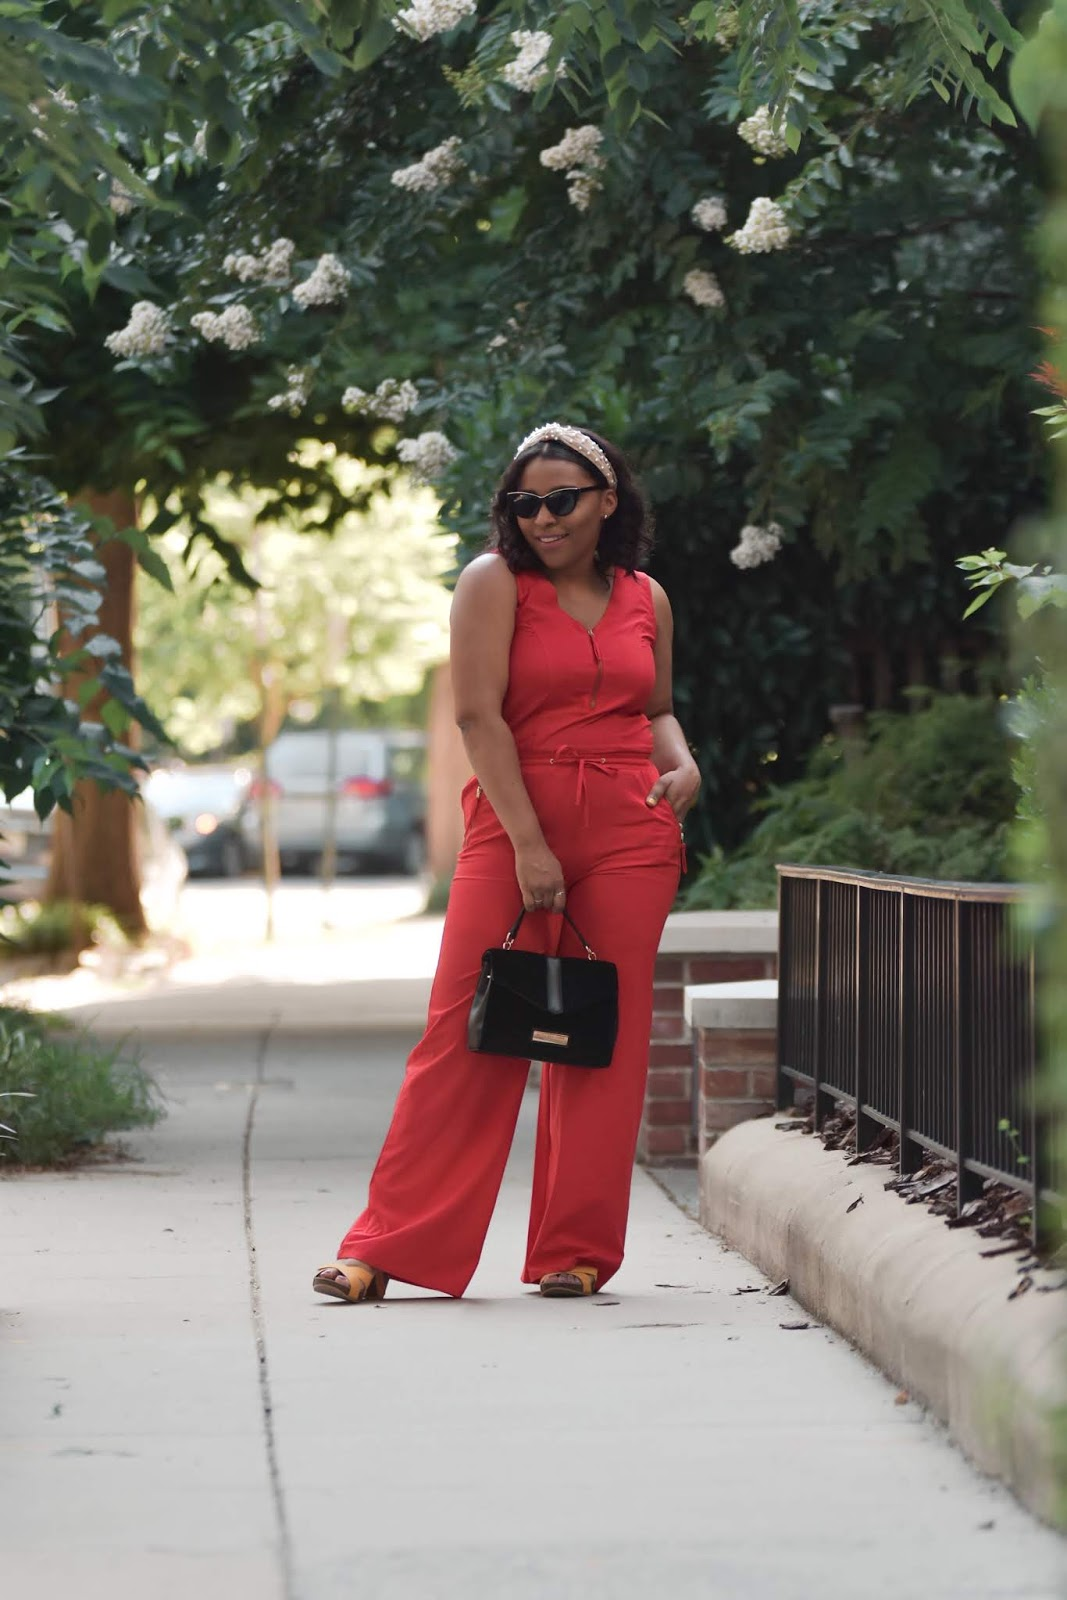 Red jumpsuit, urban decay, pearl headband, hair trends, patty's kloset, summer outfit ideas